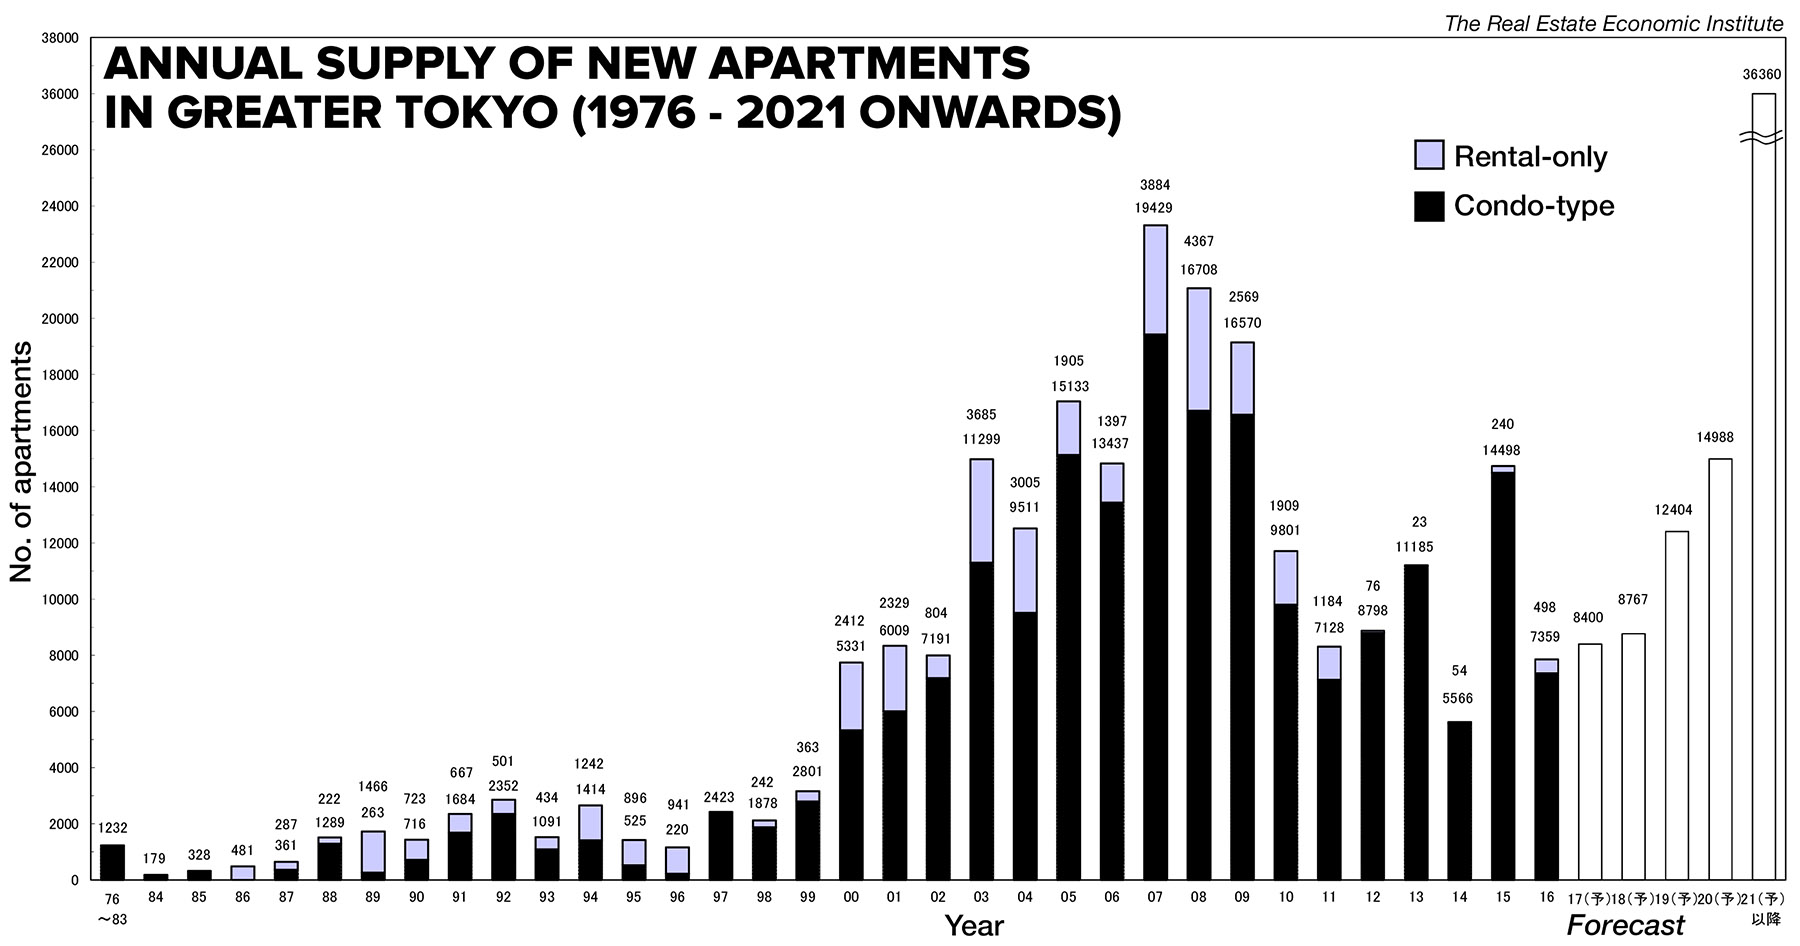 Japan's high-rise apartment market from 2017 to 2021 onwards